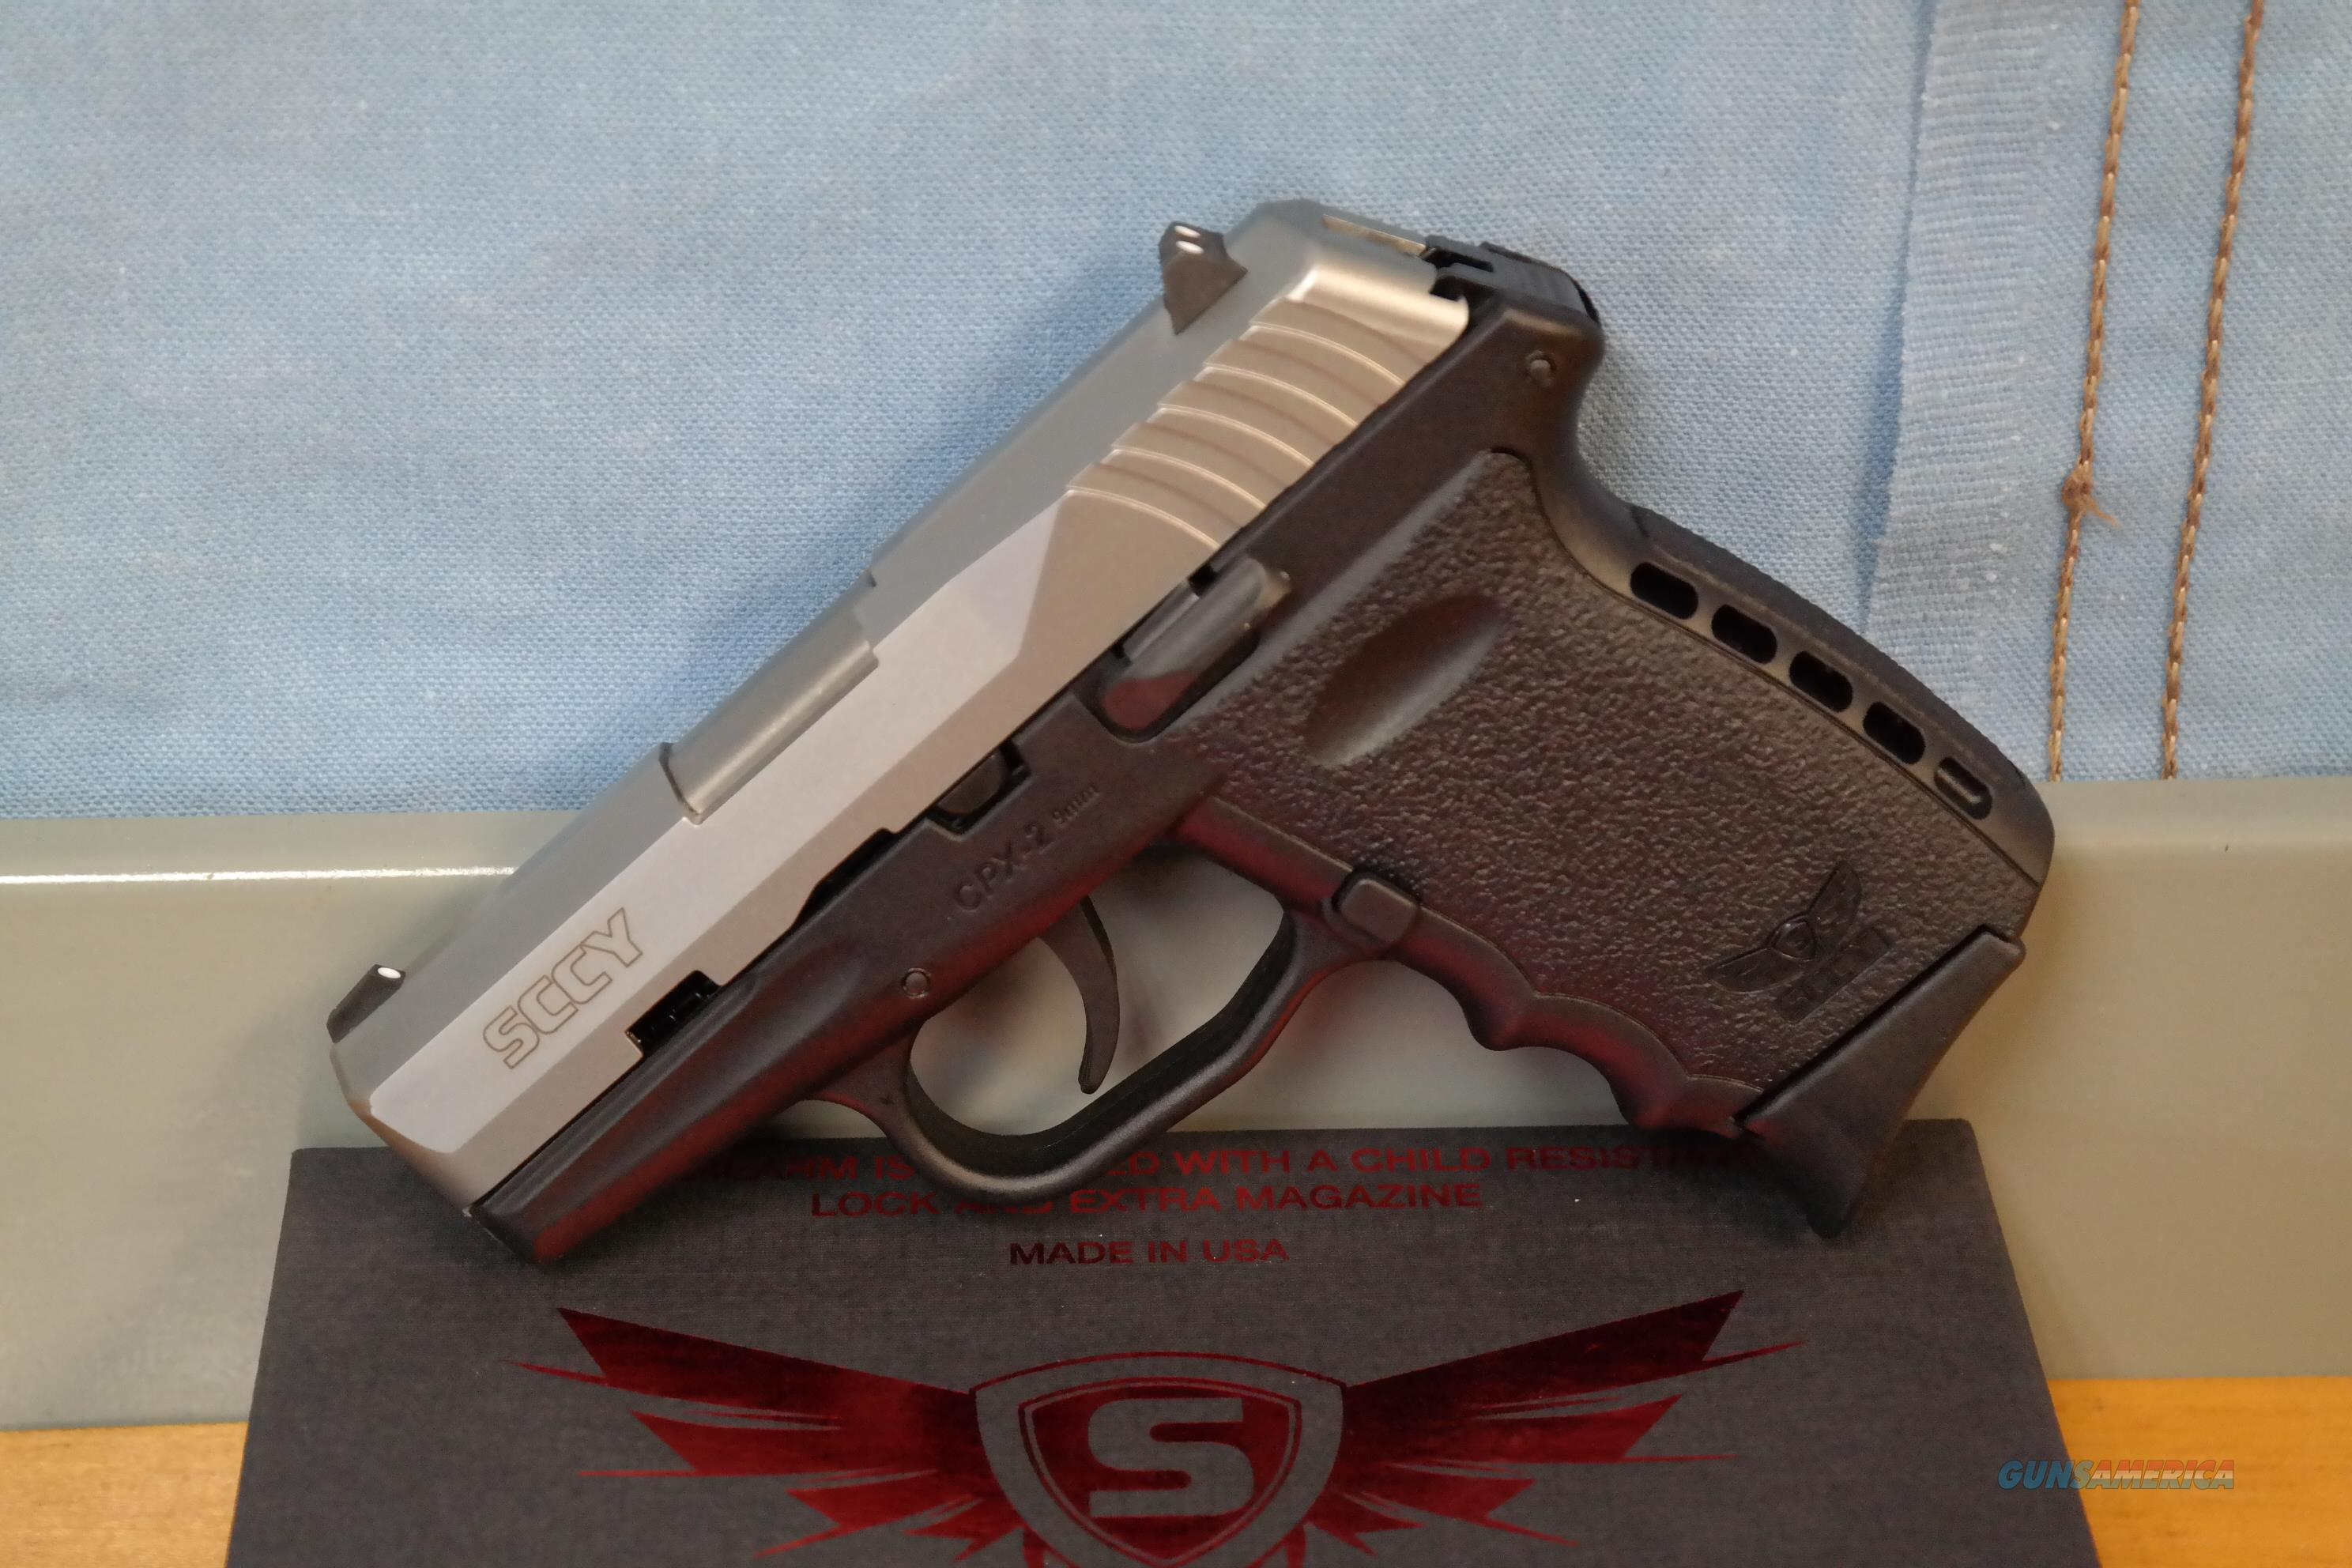 SCCY CPX-2 9mm Two-Tone  Guns > Pistols > SCCY Pistols > CPX2